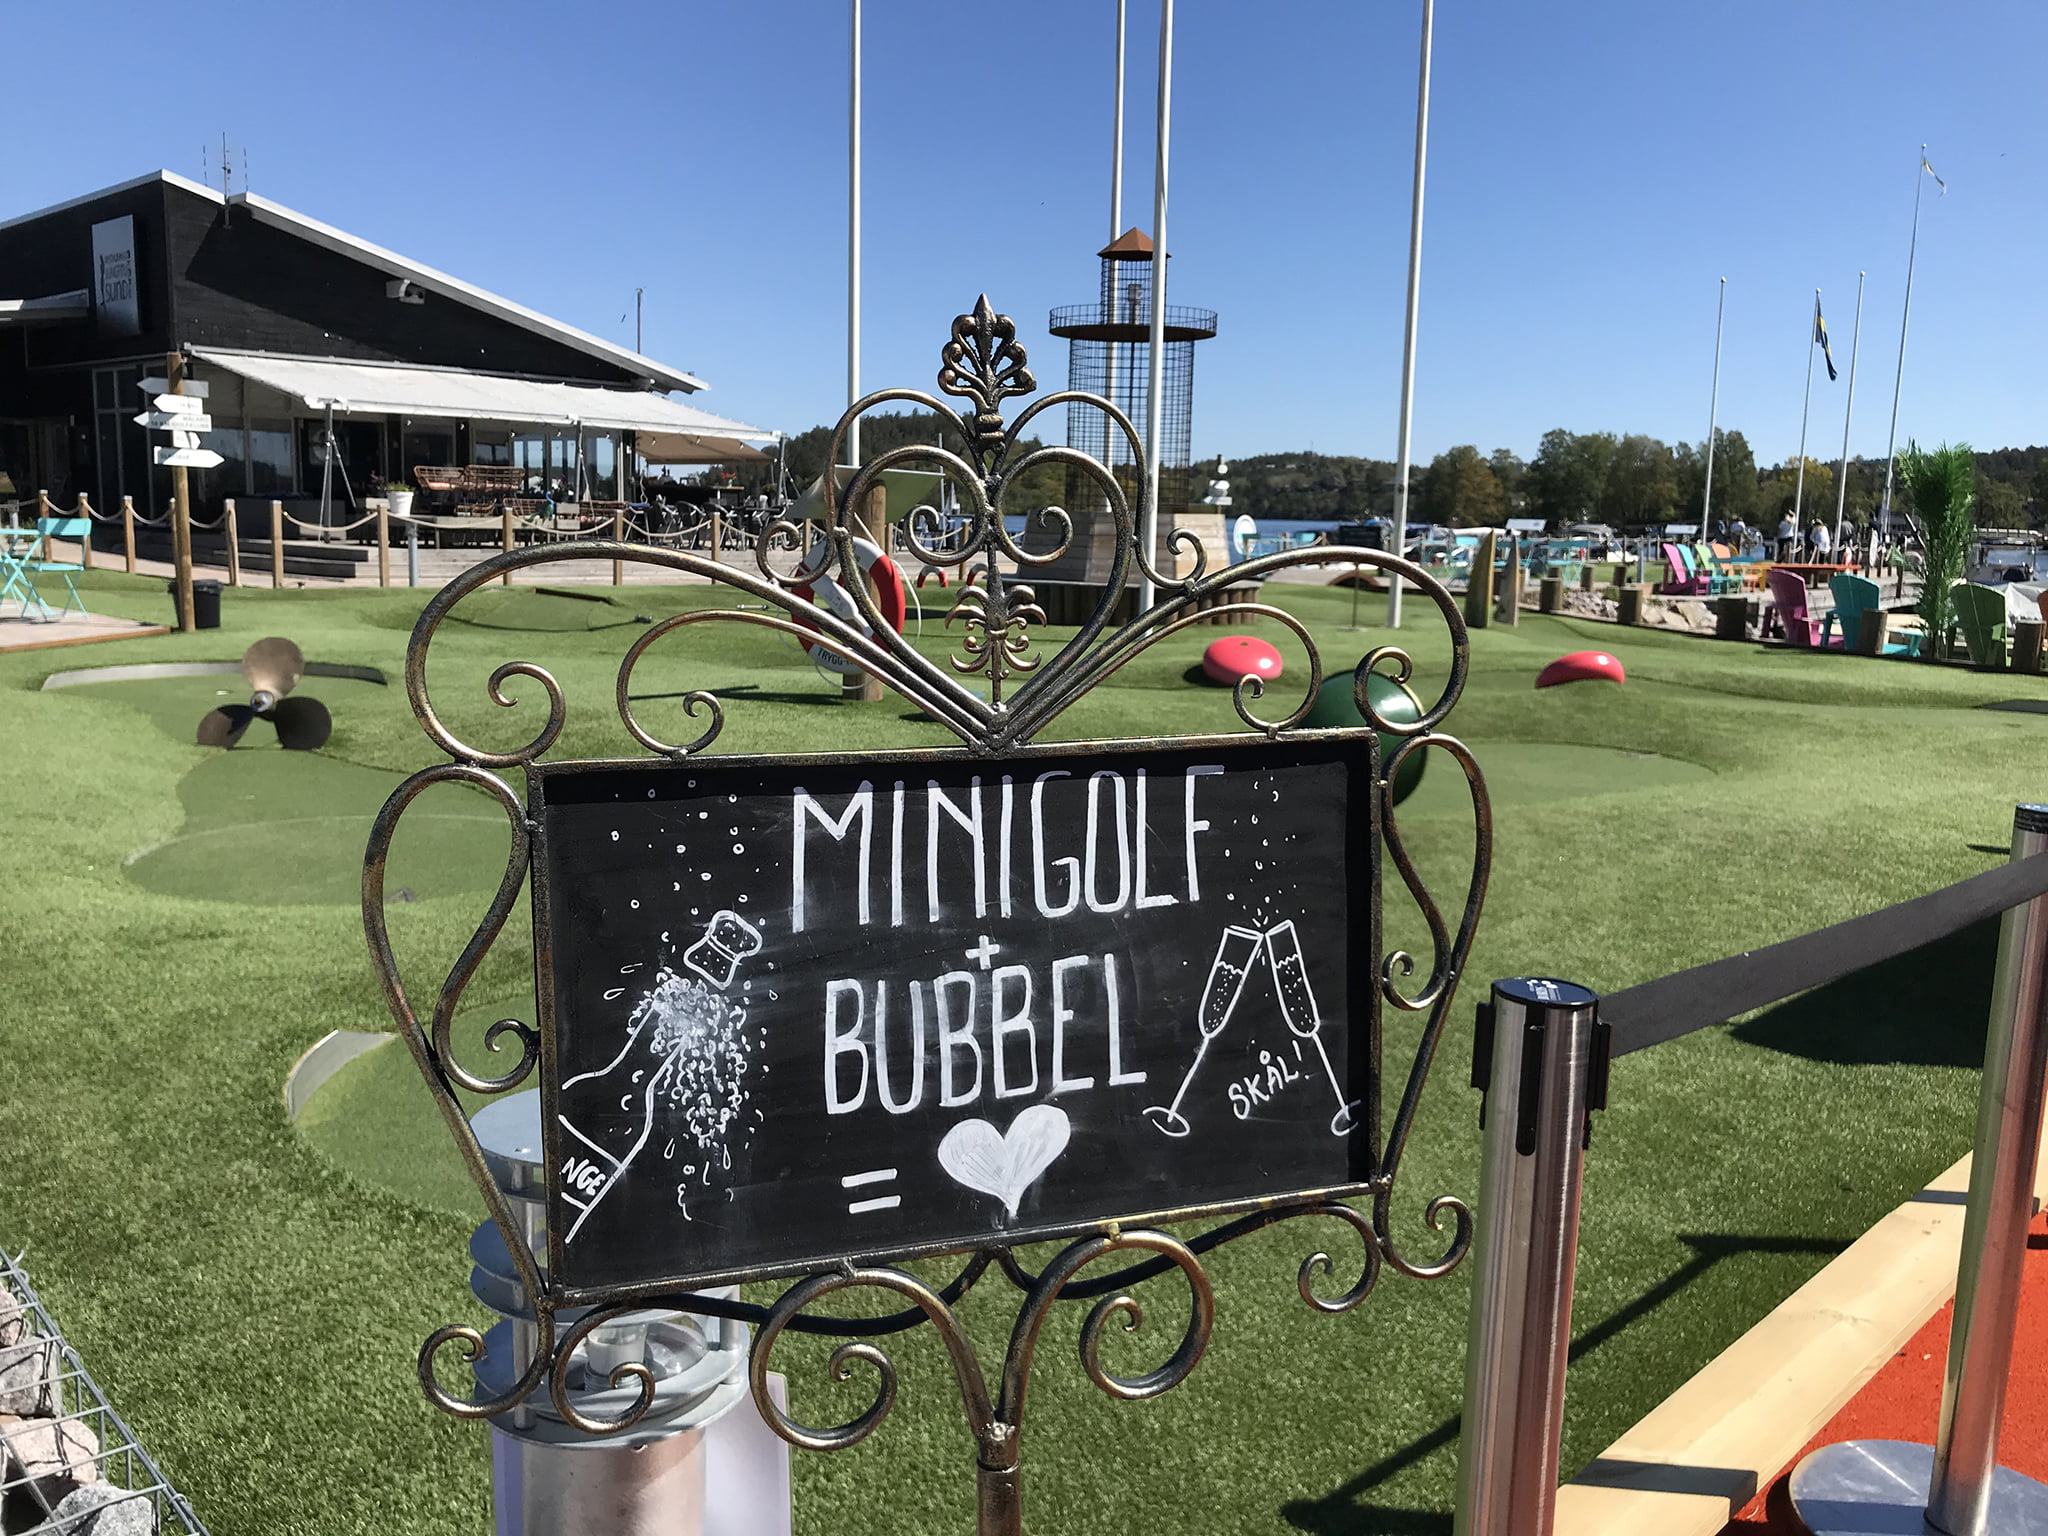 Minigolf och bubbel i Jungfrusund på Ekerö